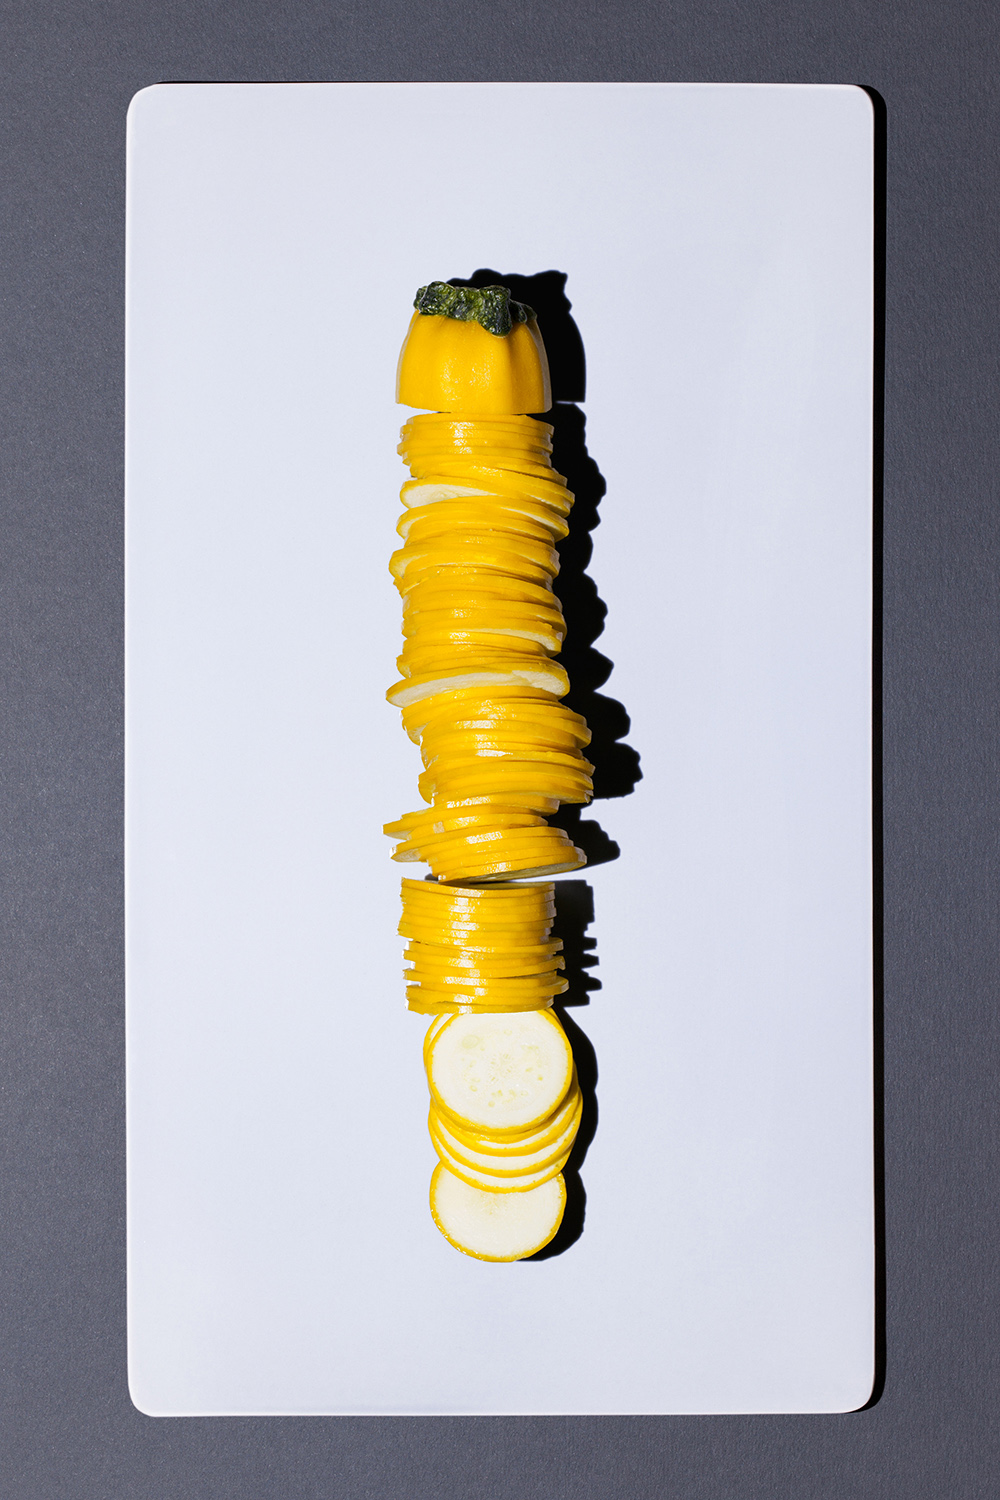 zucchini_yellow_slices_2344.jpg